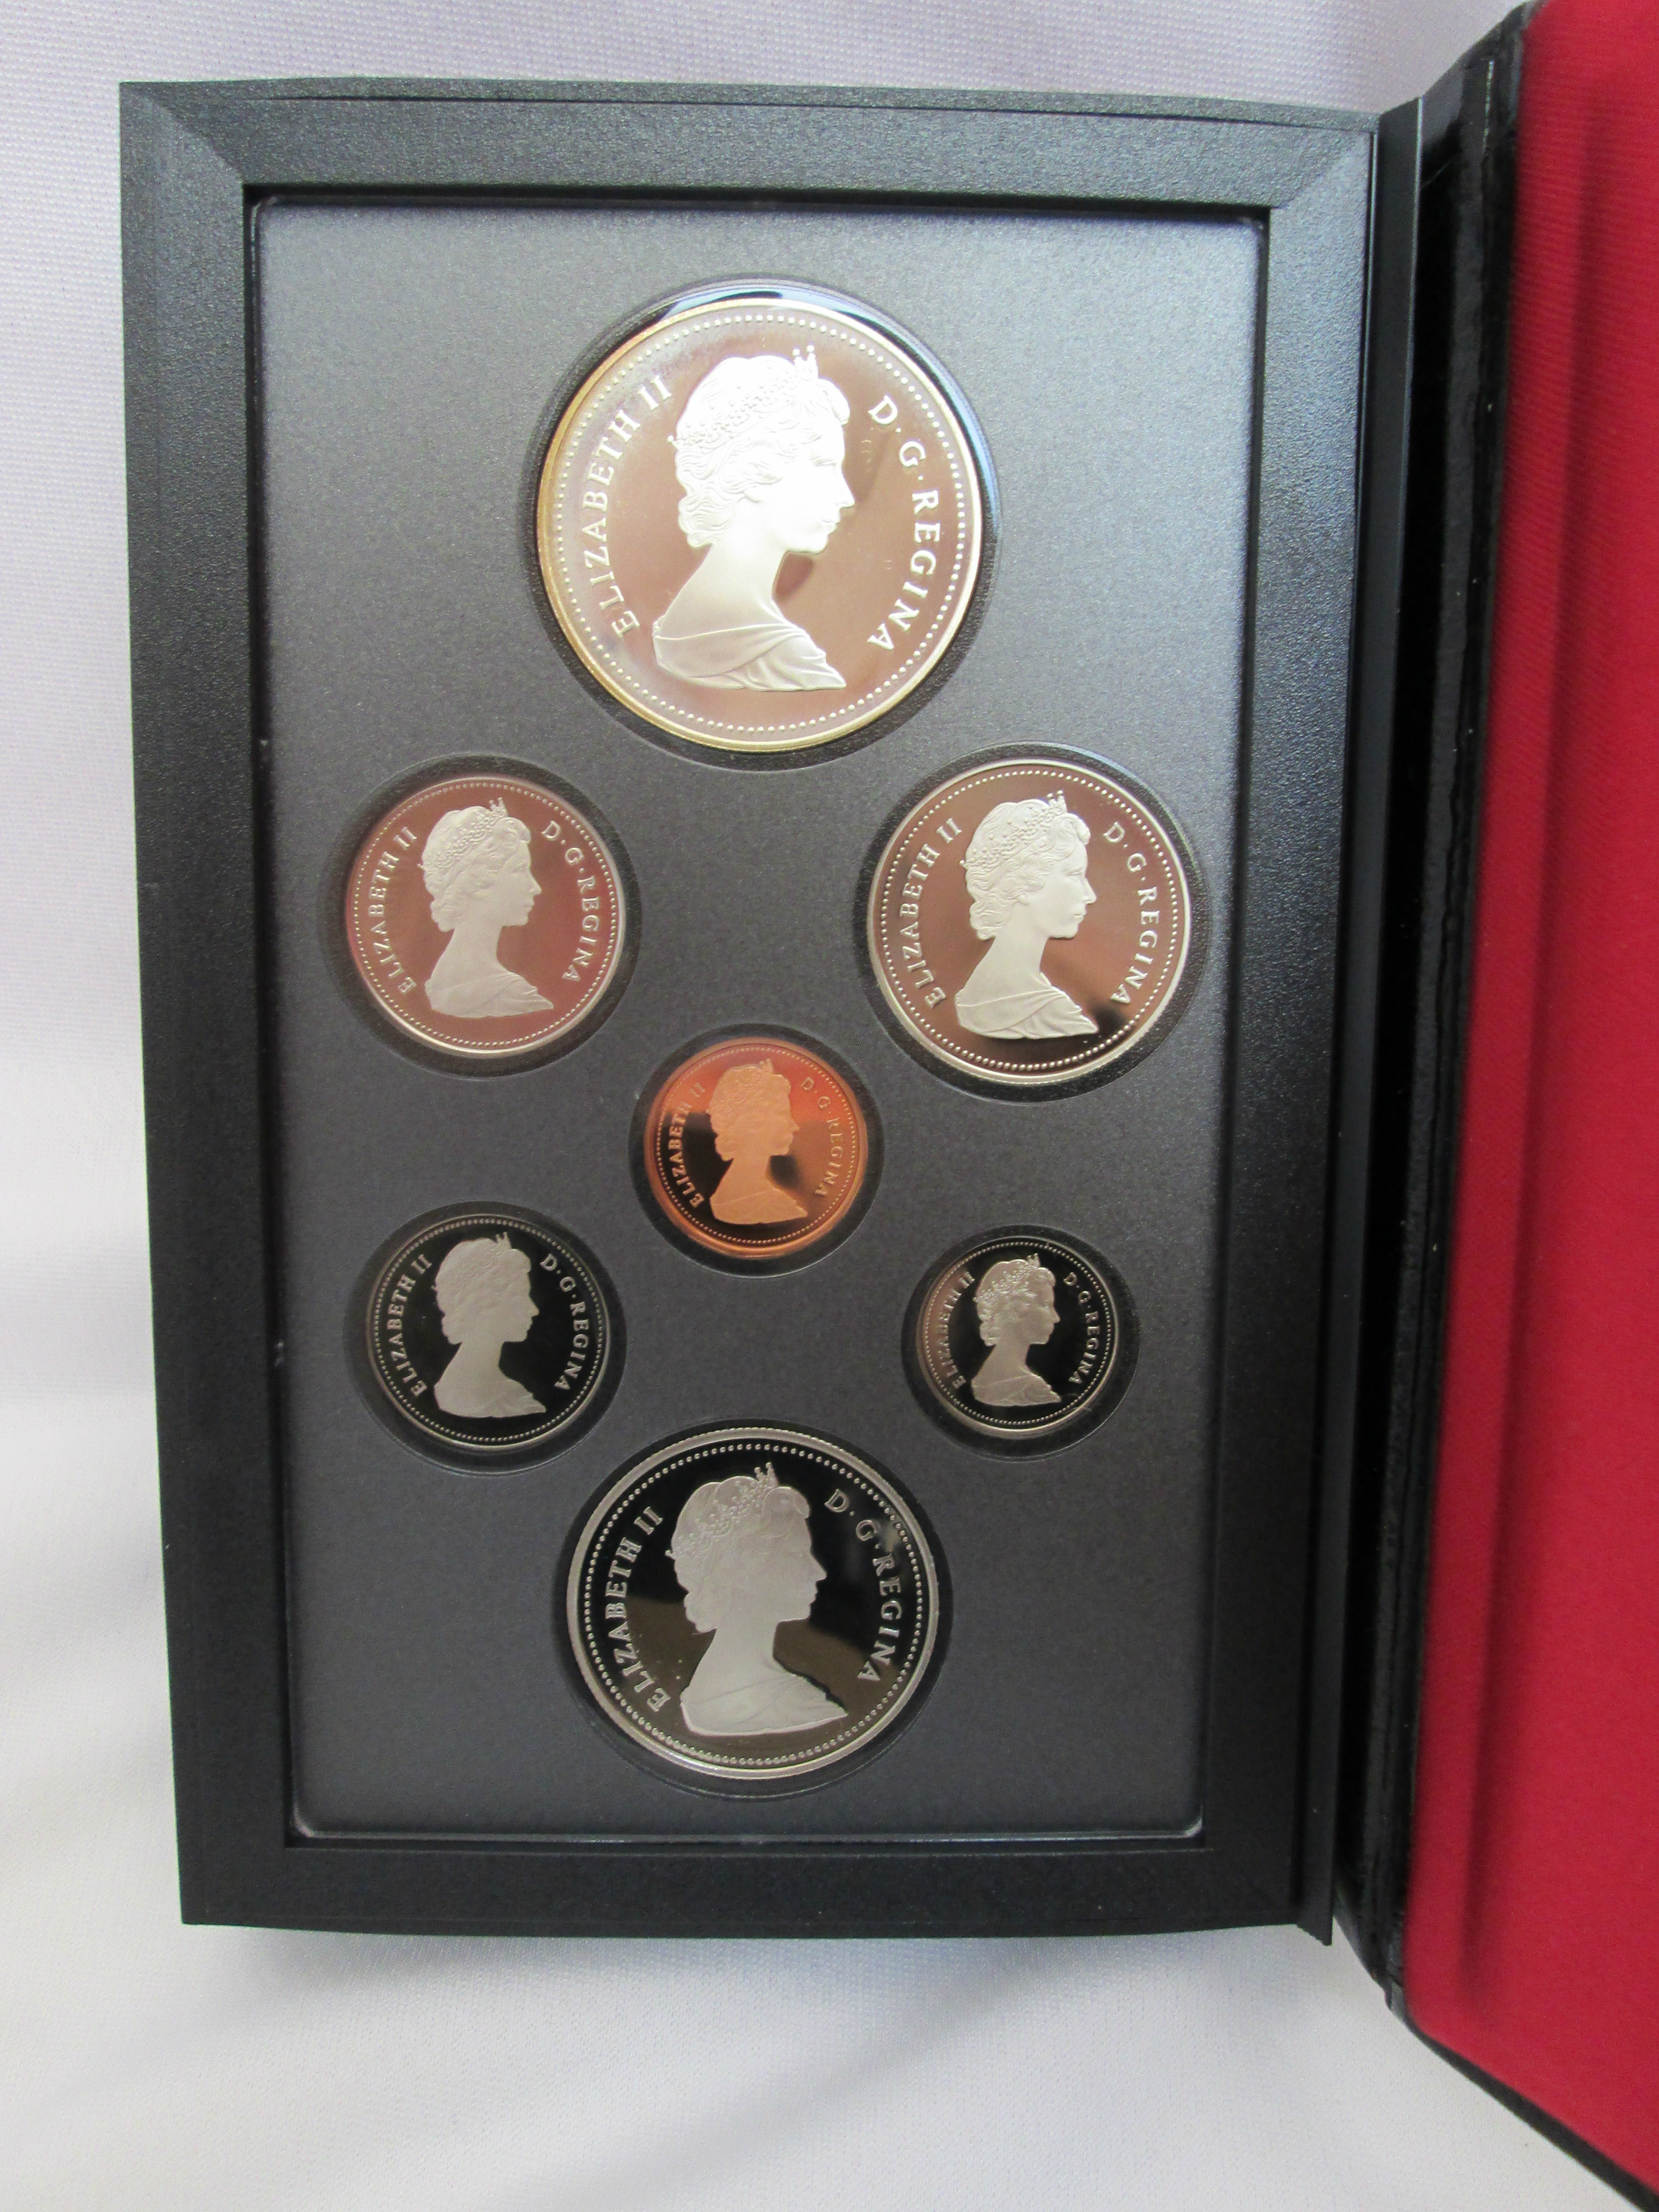 7 Coin Proof Set Royal Canadian Mint 1986 Current